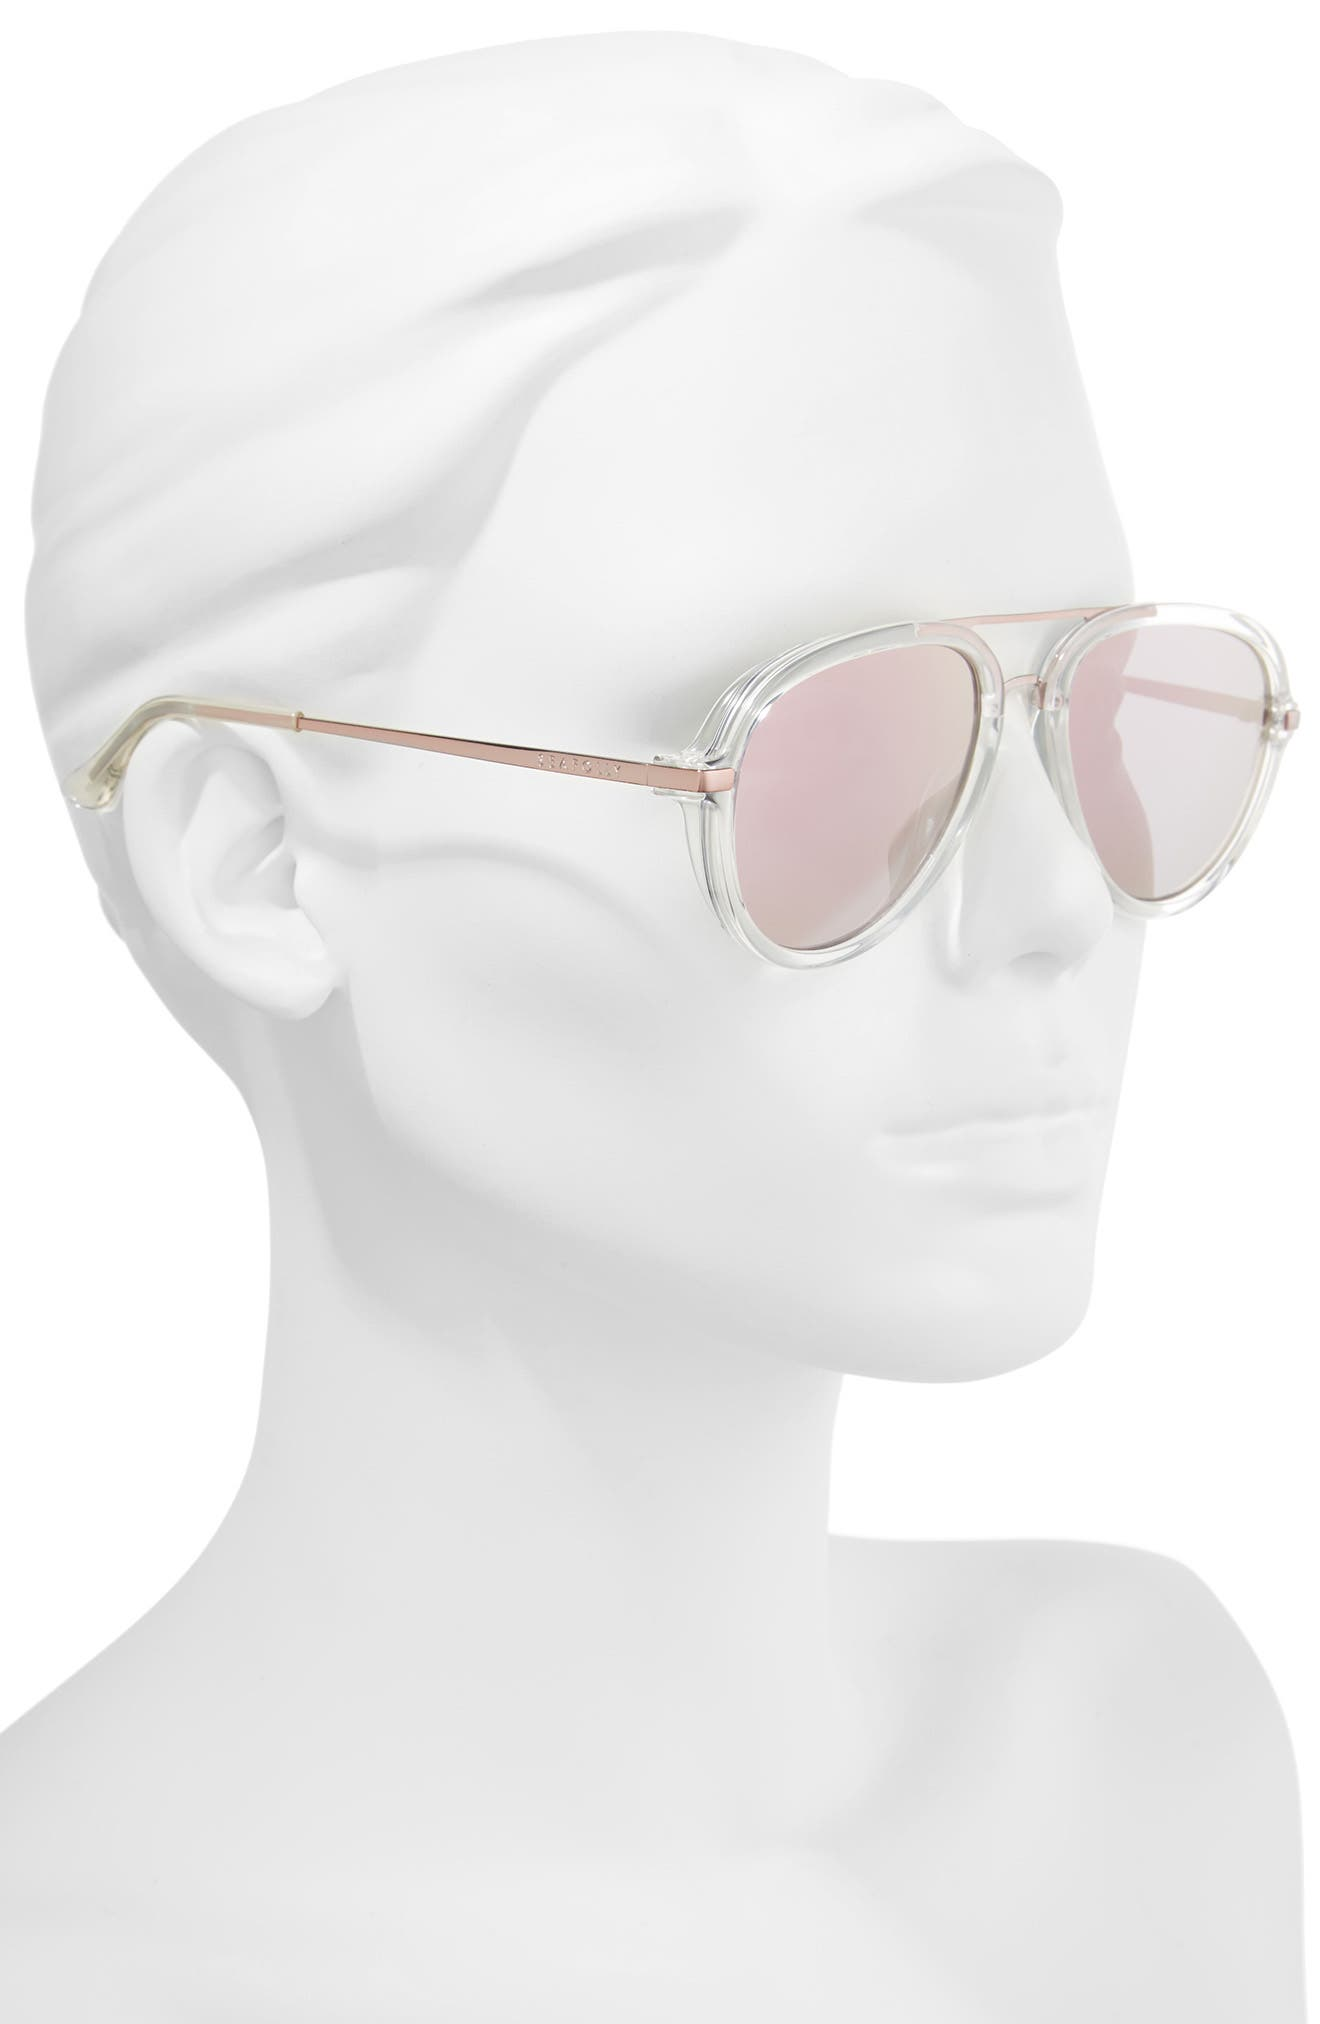 Byron Bay 54mm Aviator Sunglasses,                             Alternate thumbnail 3, color,